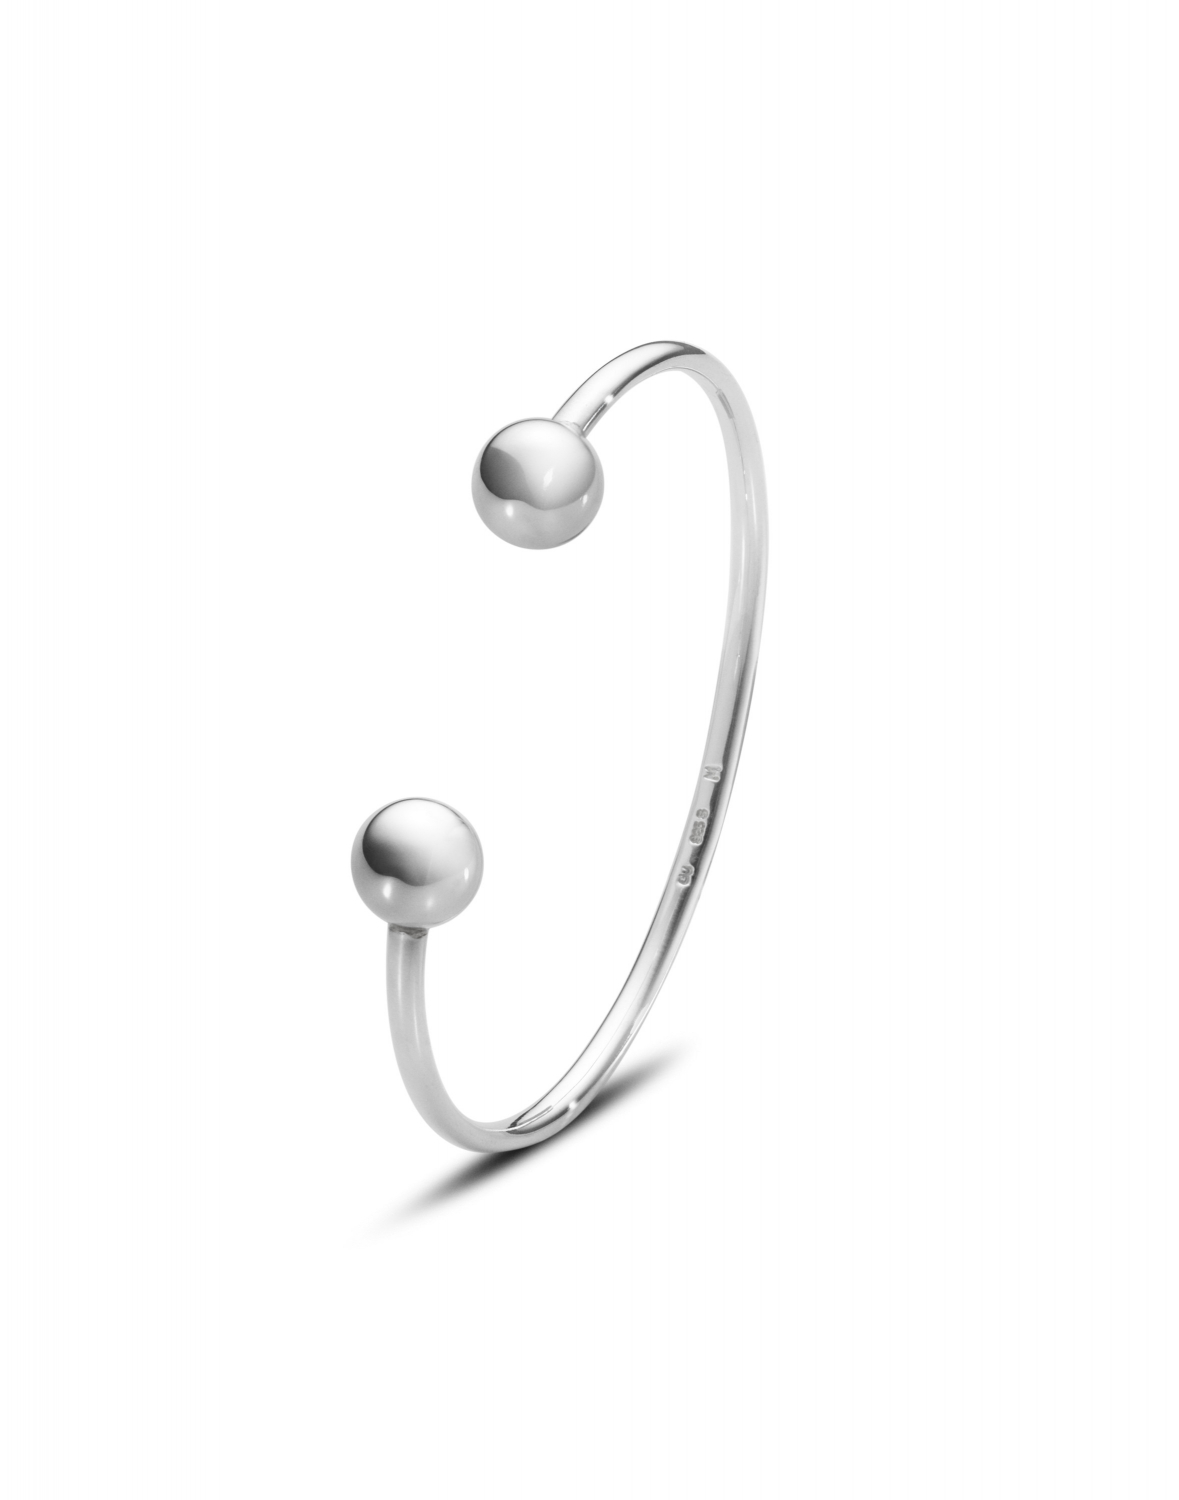 Georg Jensen Moonlight Grapes armring - 3531298 Armring størrelse M